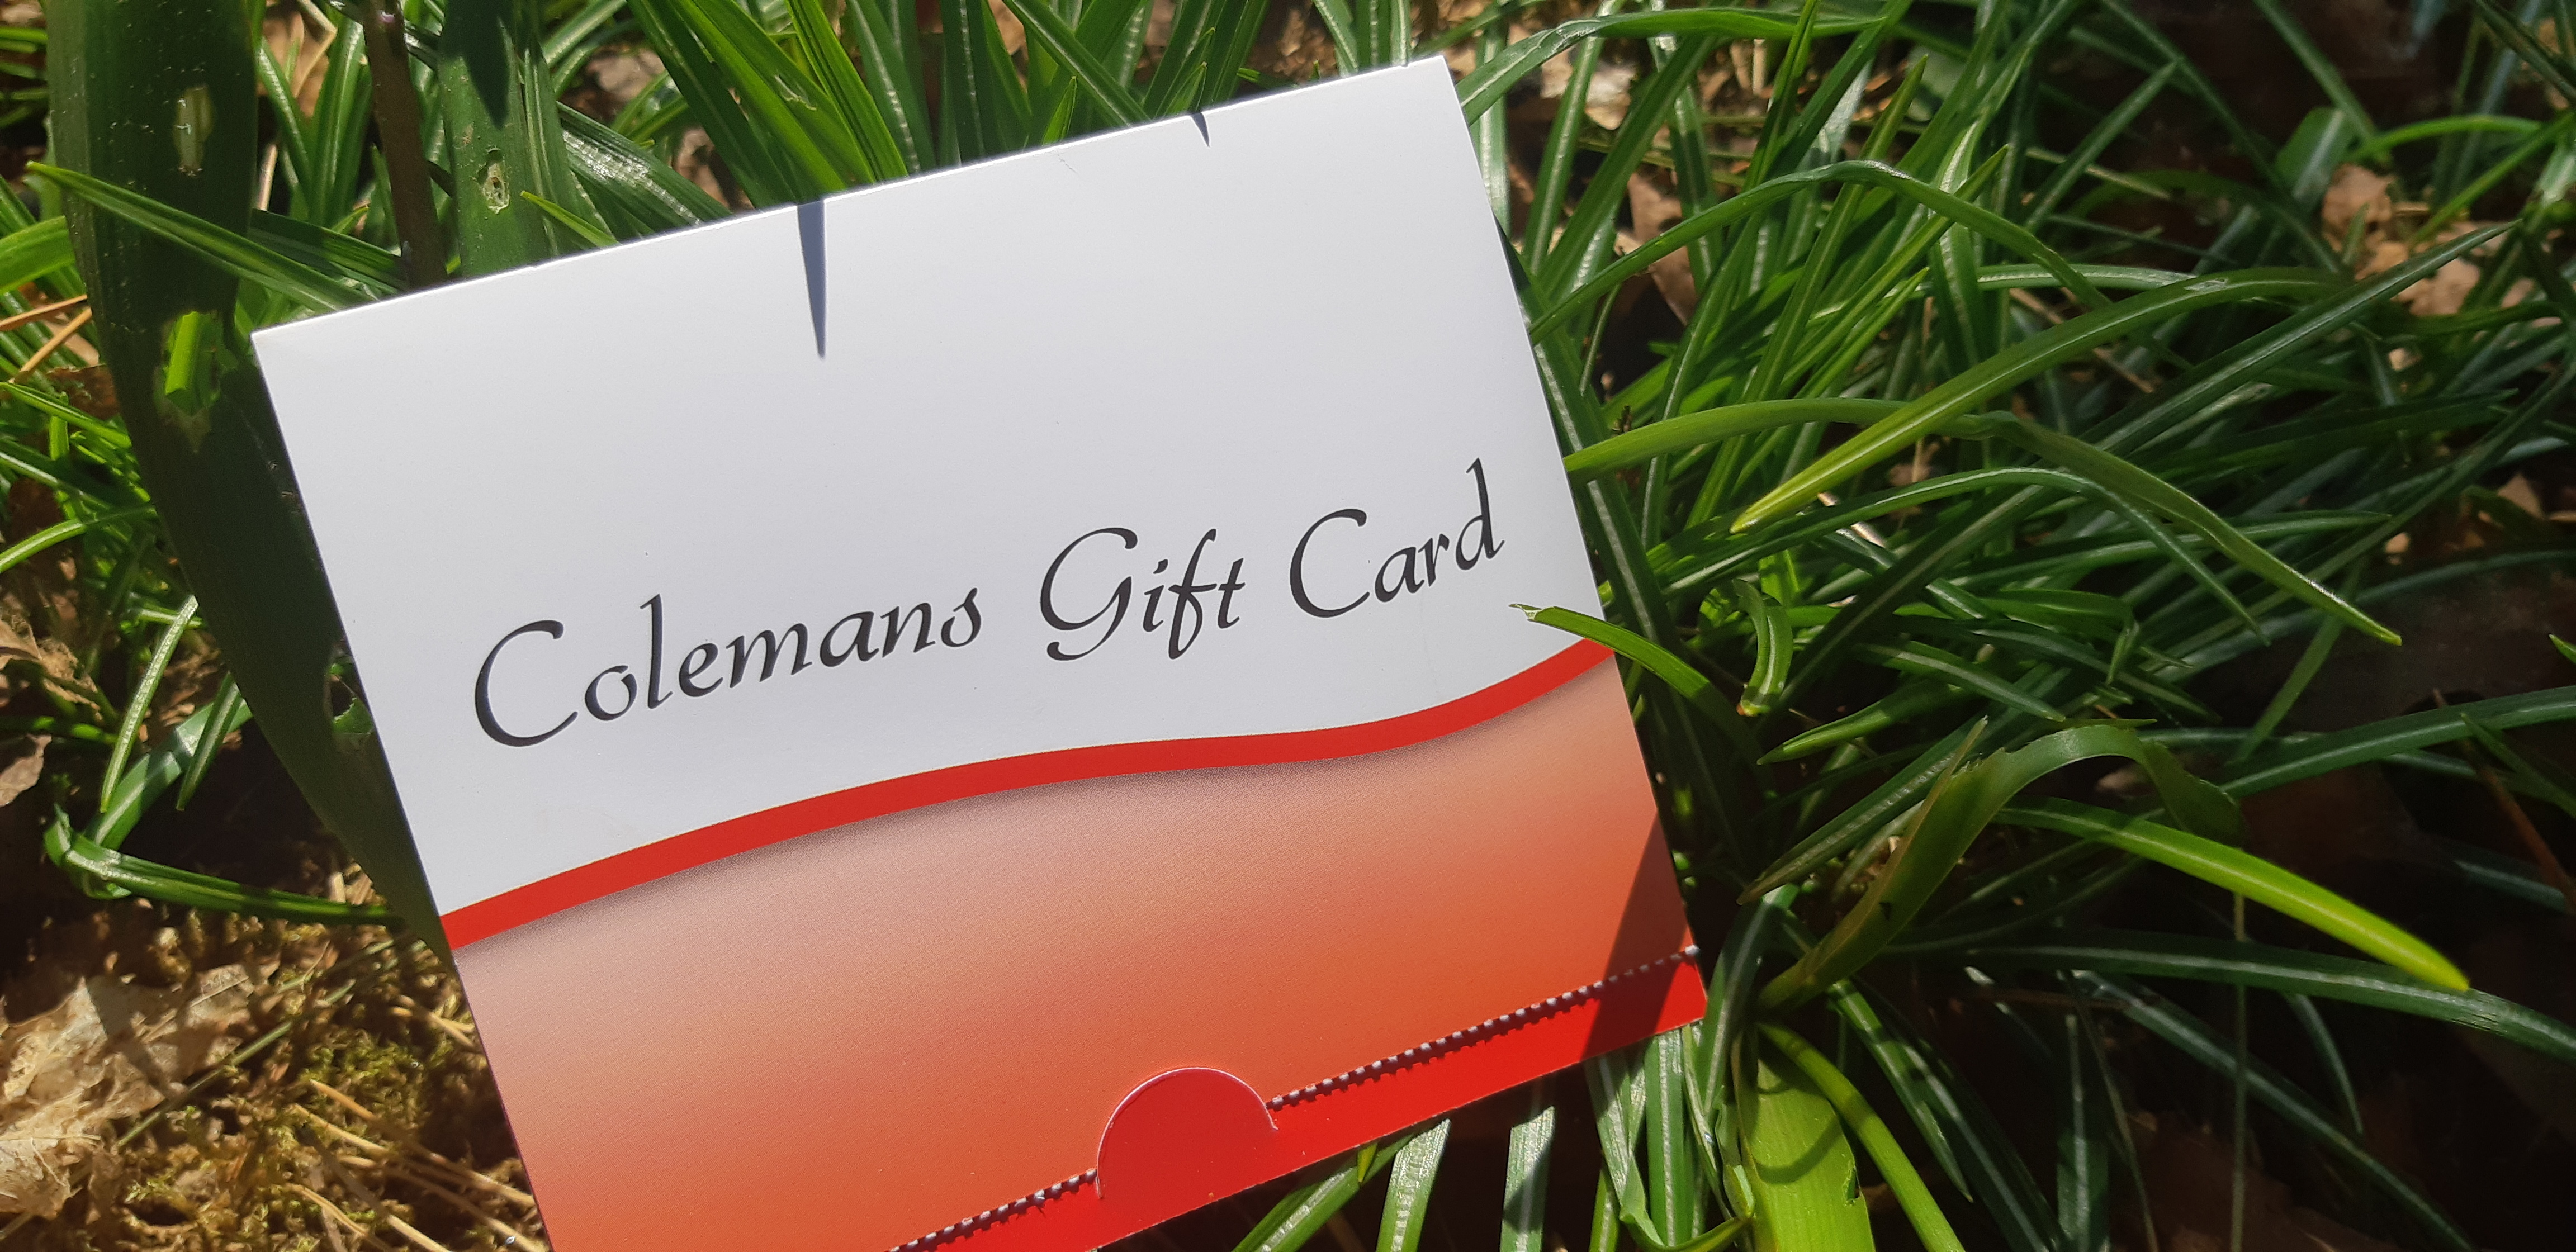 Individual gift cards for Colemans supermarkets allow recipients to make their own choices about what they need. (Submitted by Krista Brodeur)